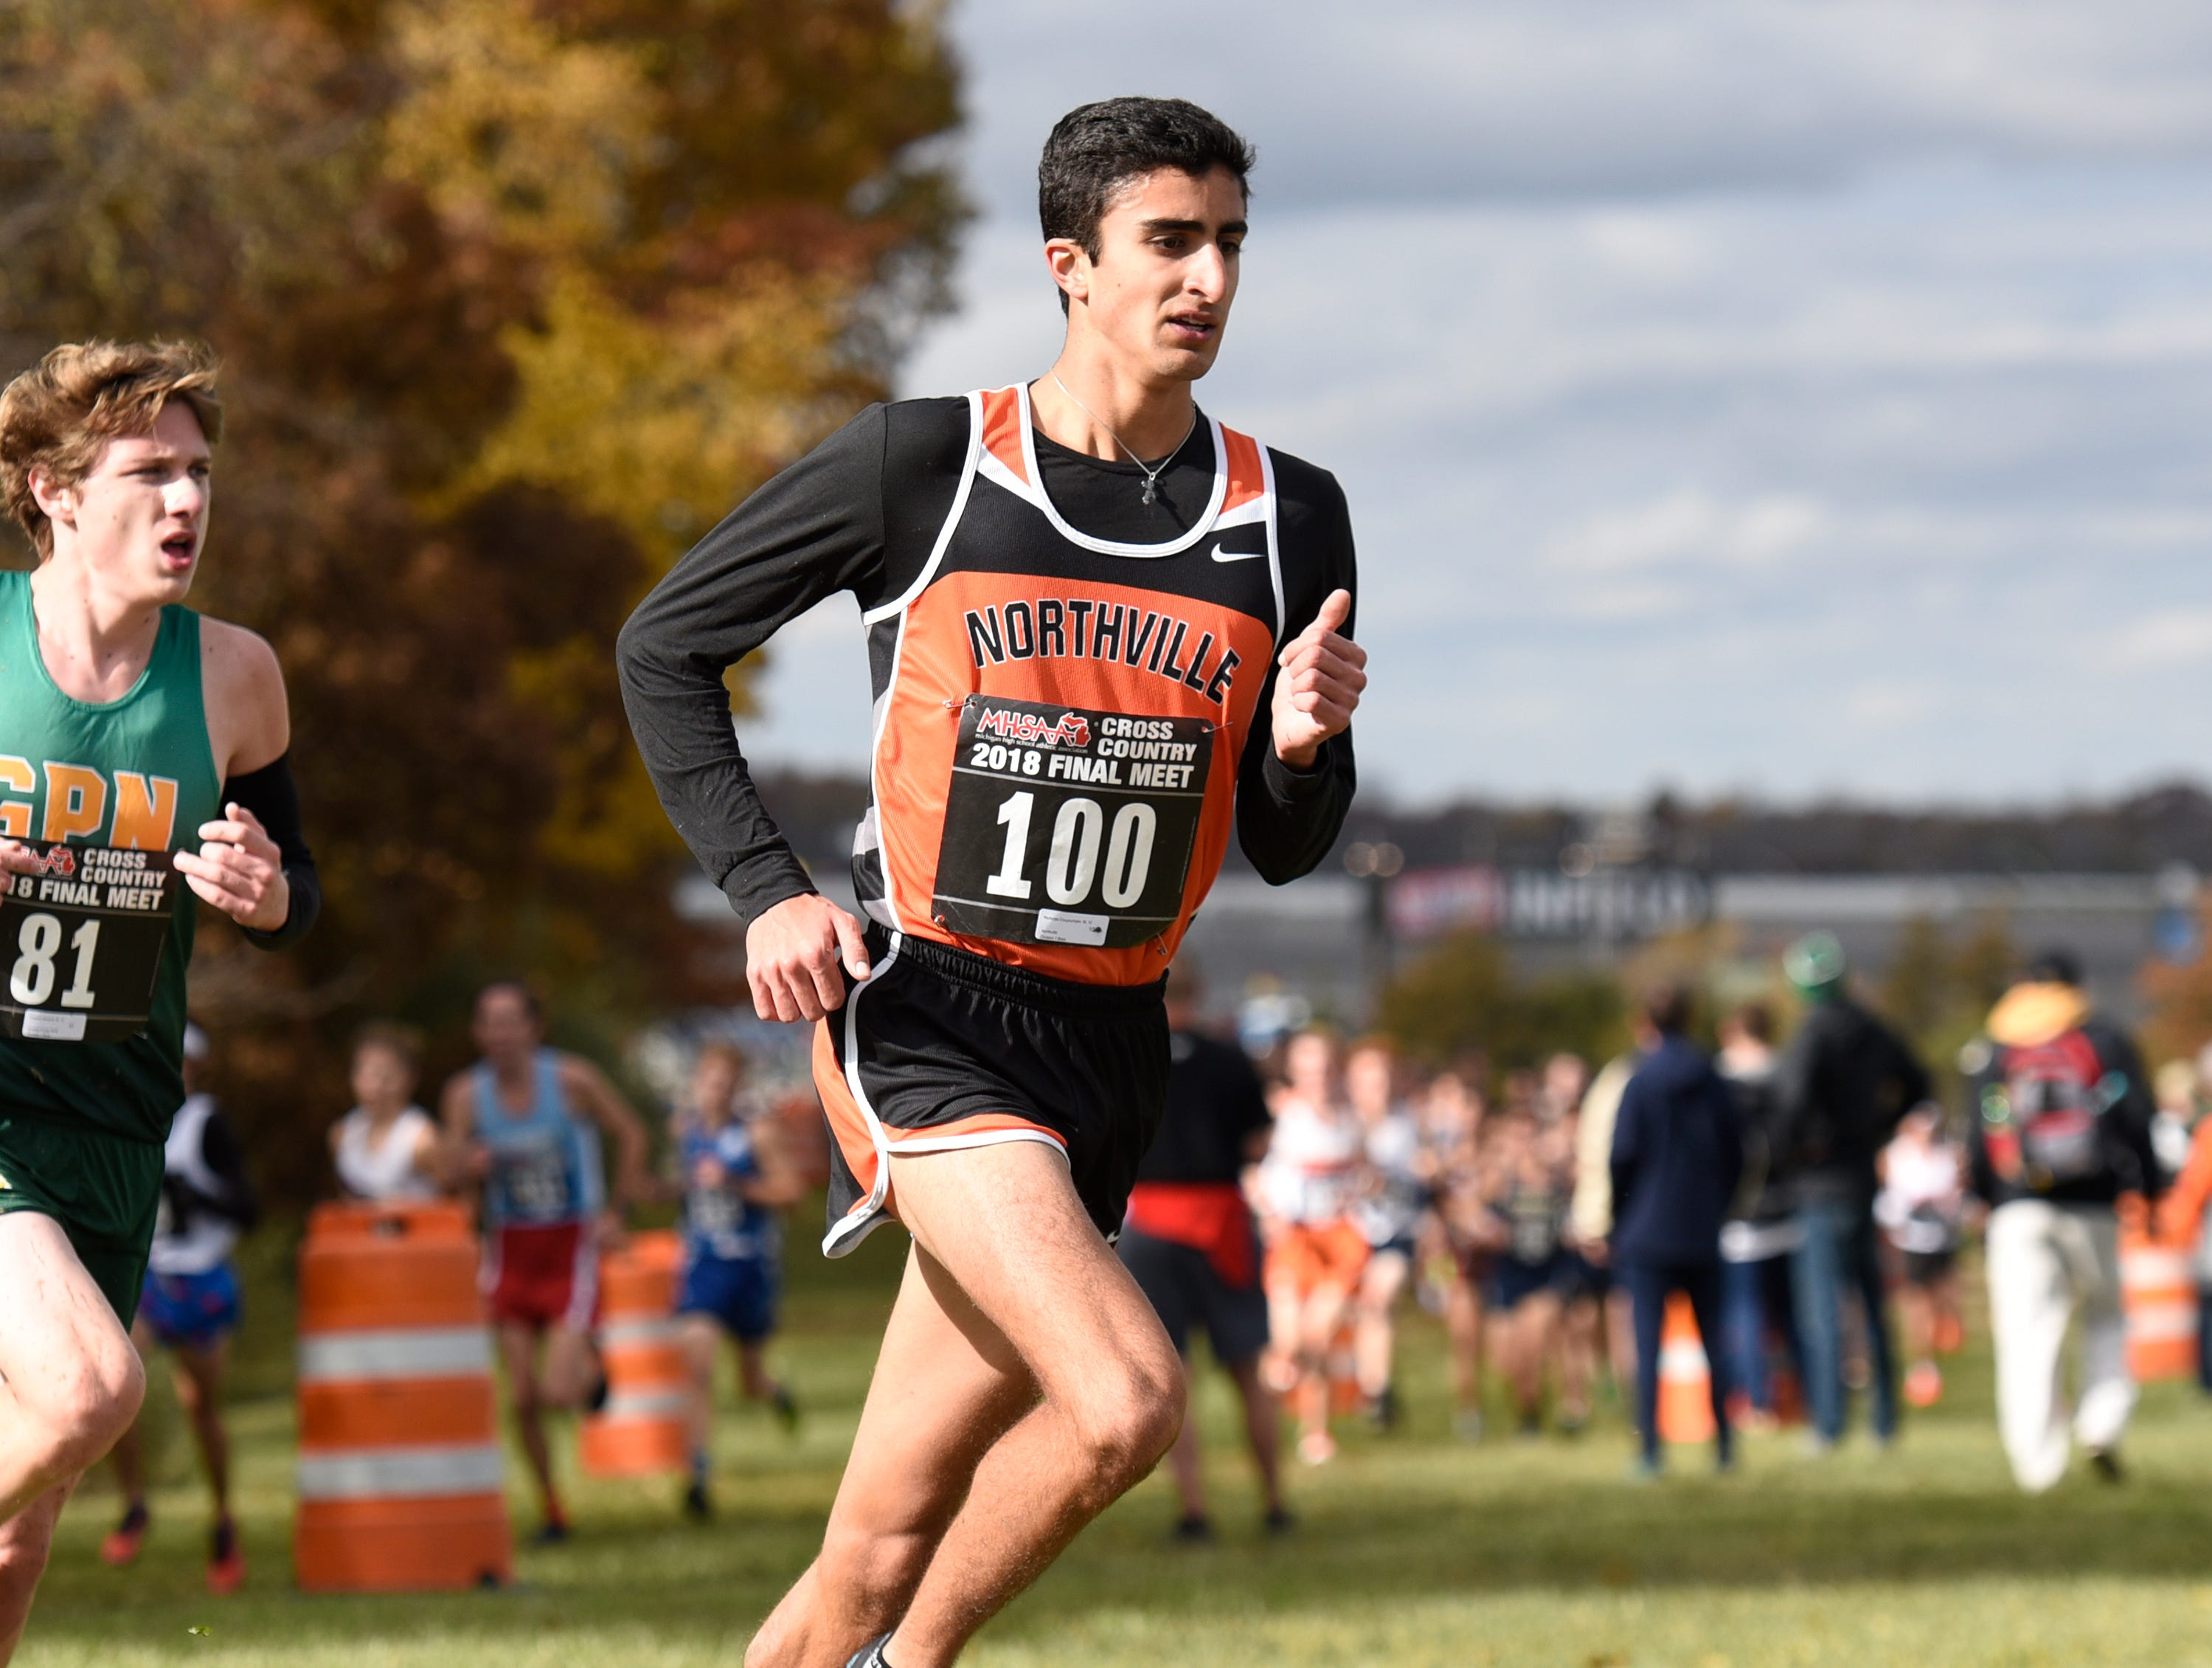 Northville's Nicholas Couyoumjian during the Division 1 2018 cross country finals at Michigan International Speedway.